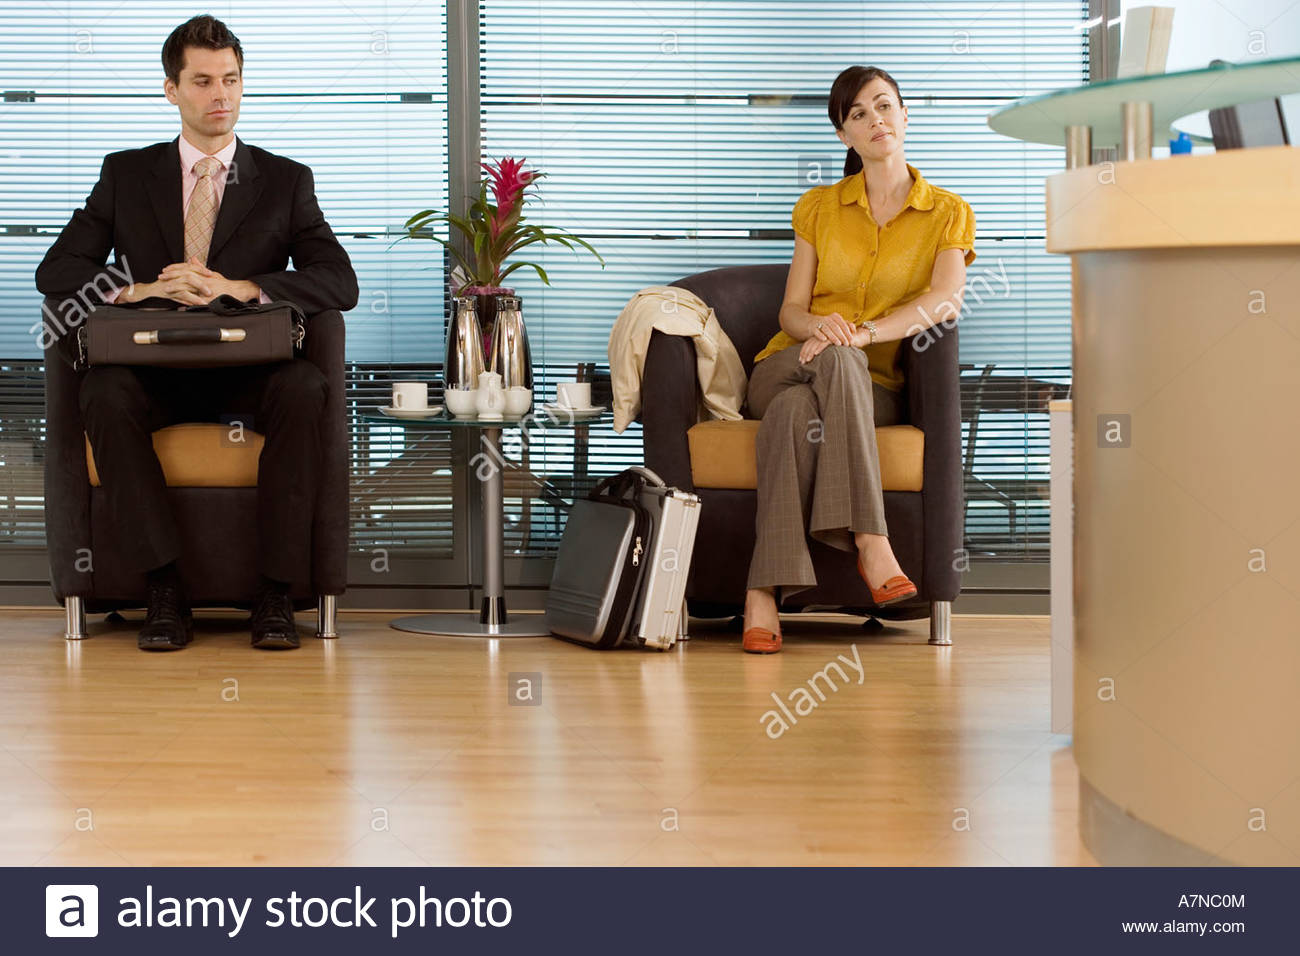 Businessman and businesswoman sitting in office reception area waiting patiently - Stock Image